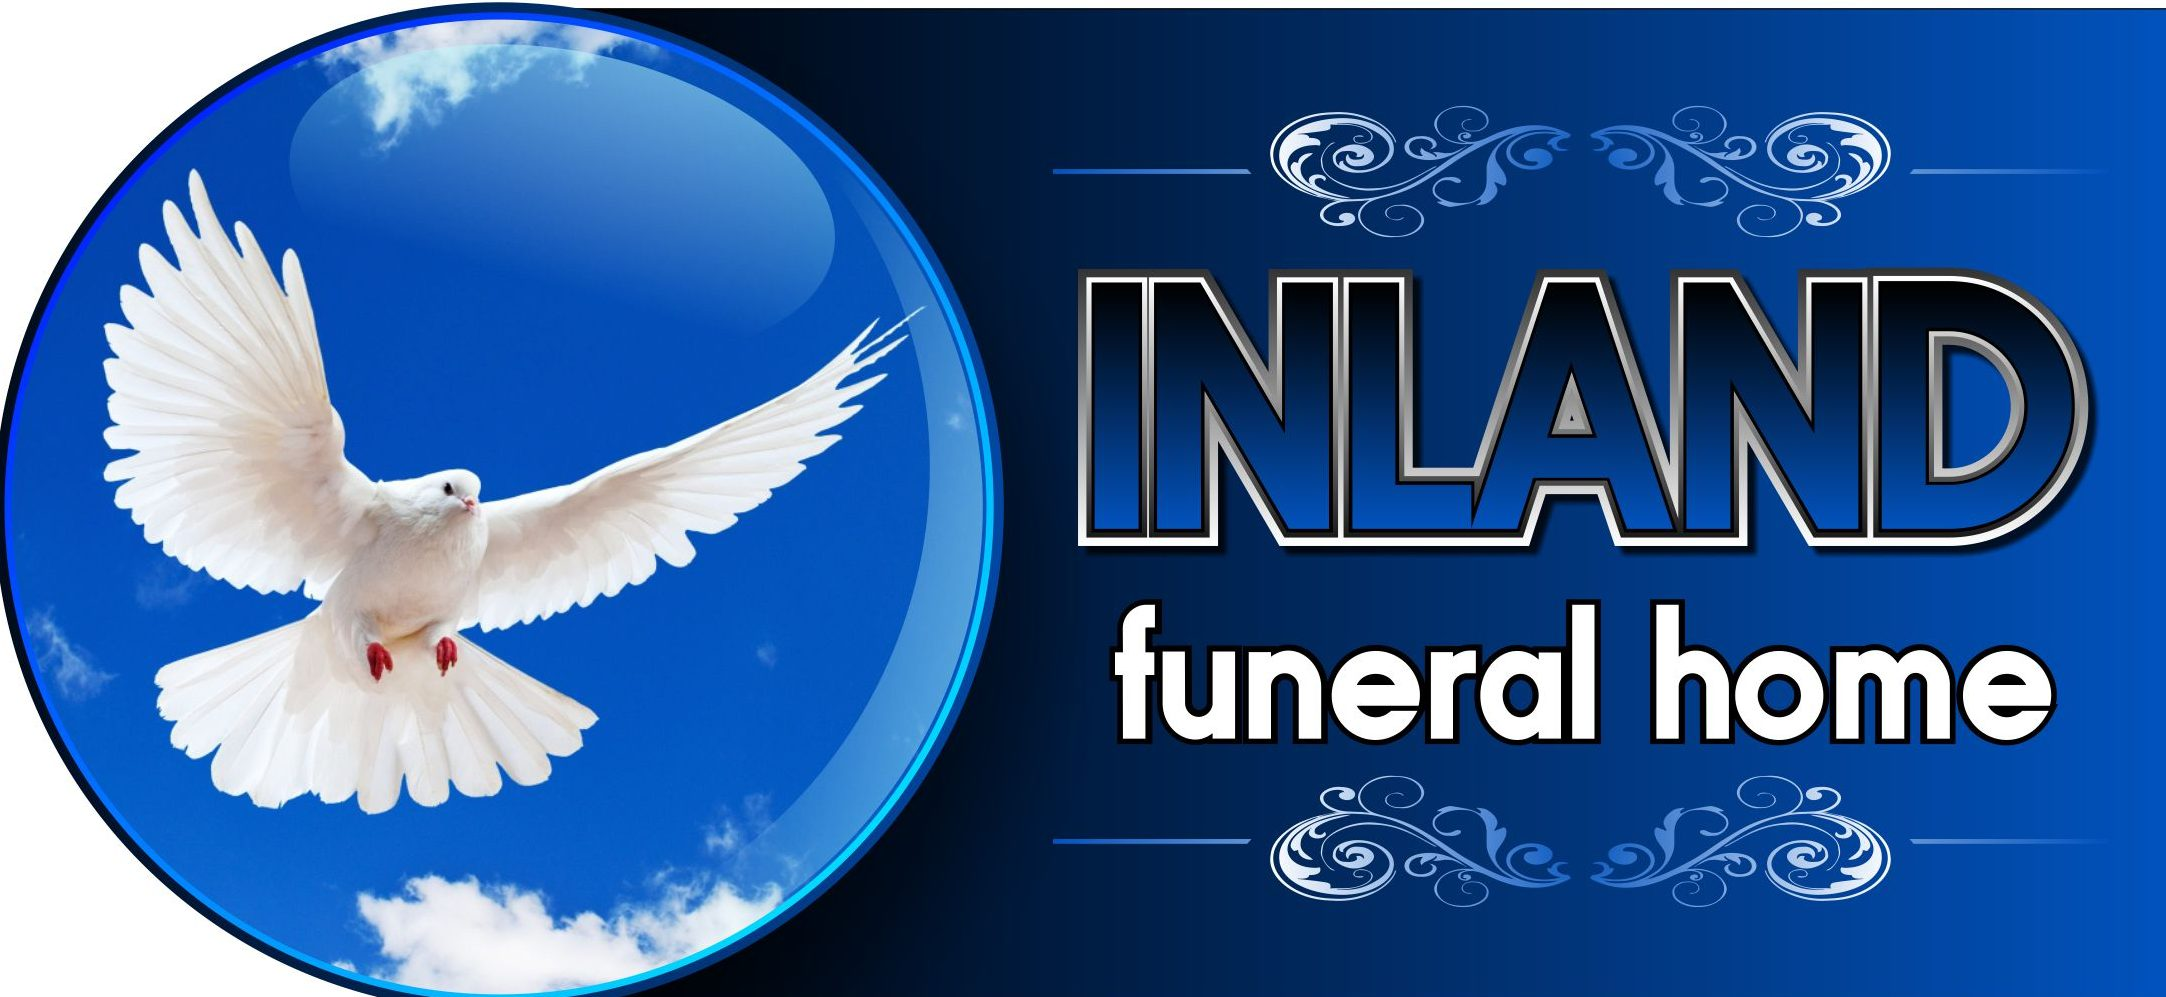 INLAND funeral home